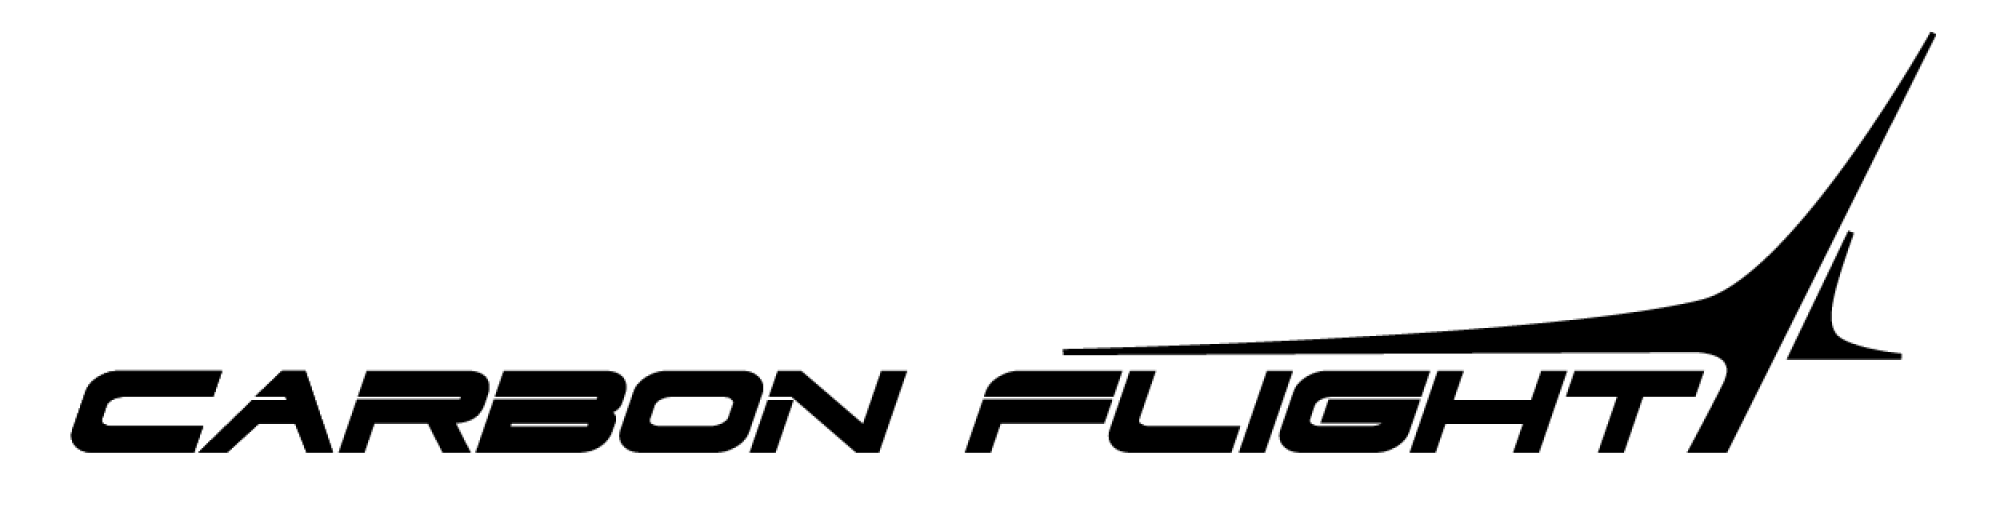 cropped-carbon-flight-logo.png